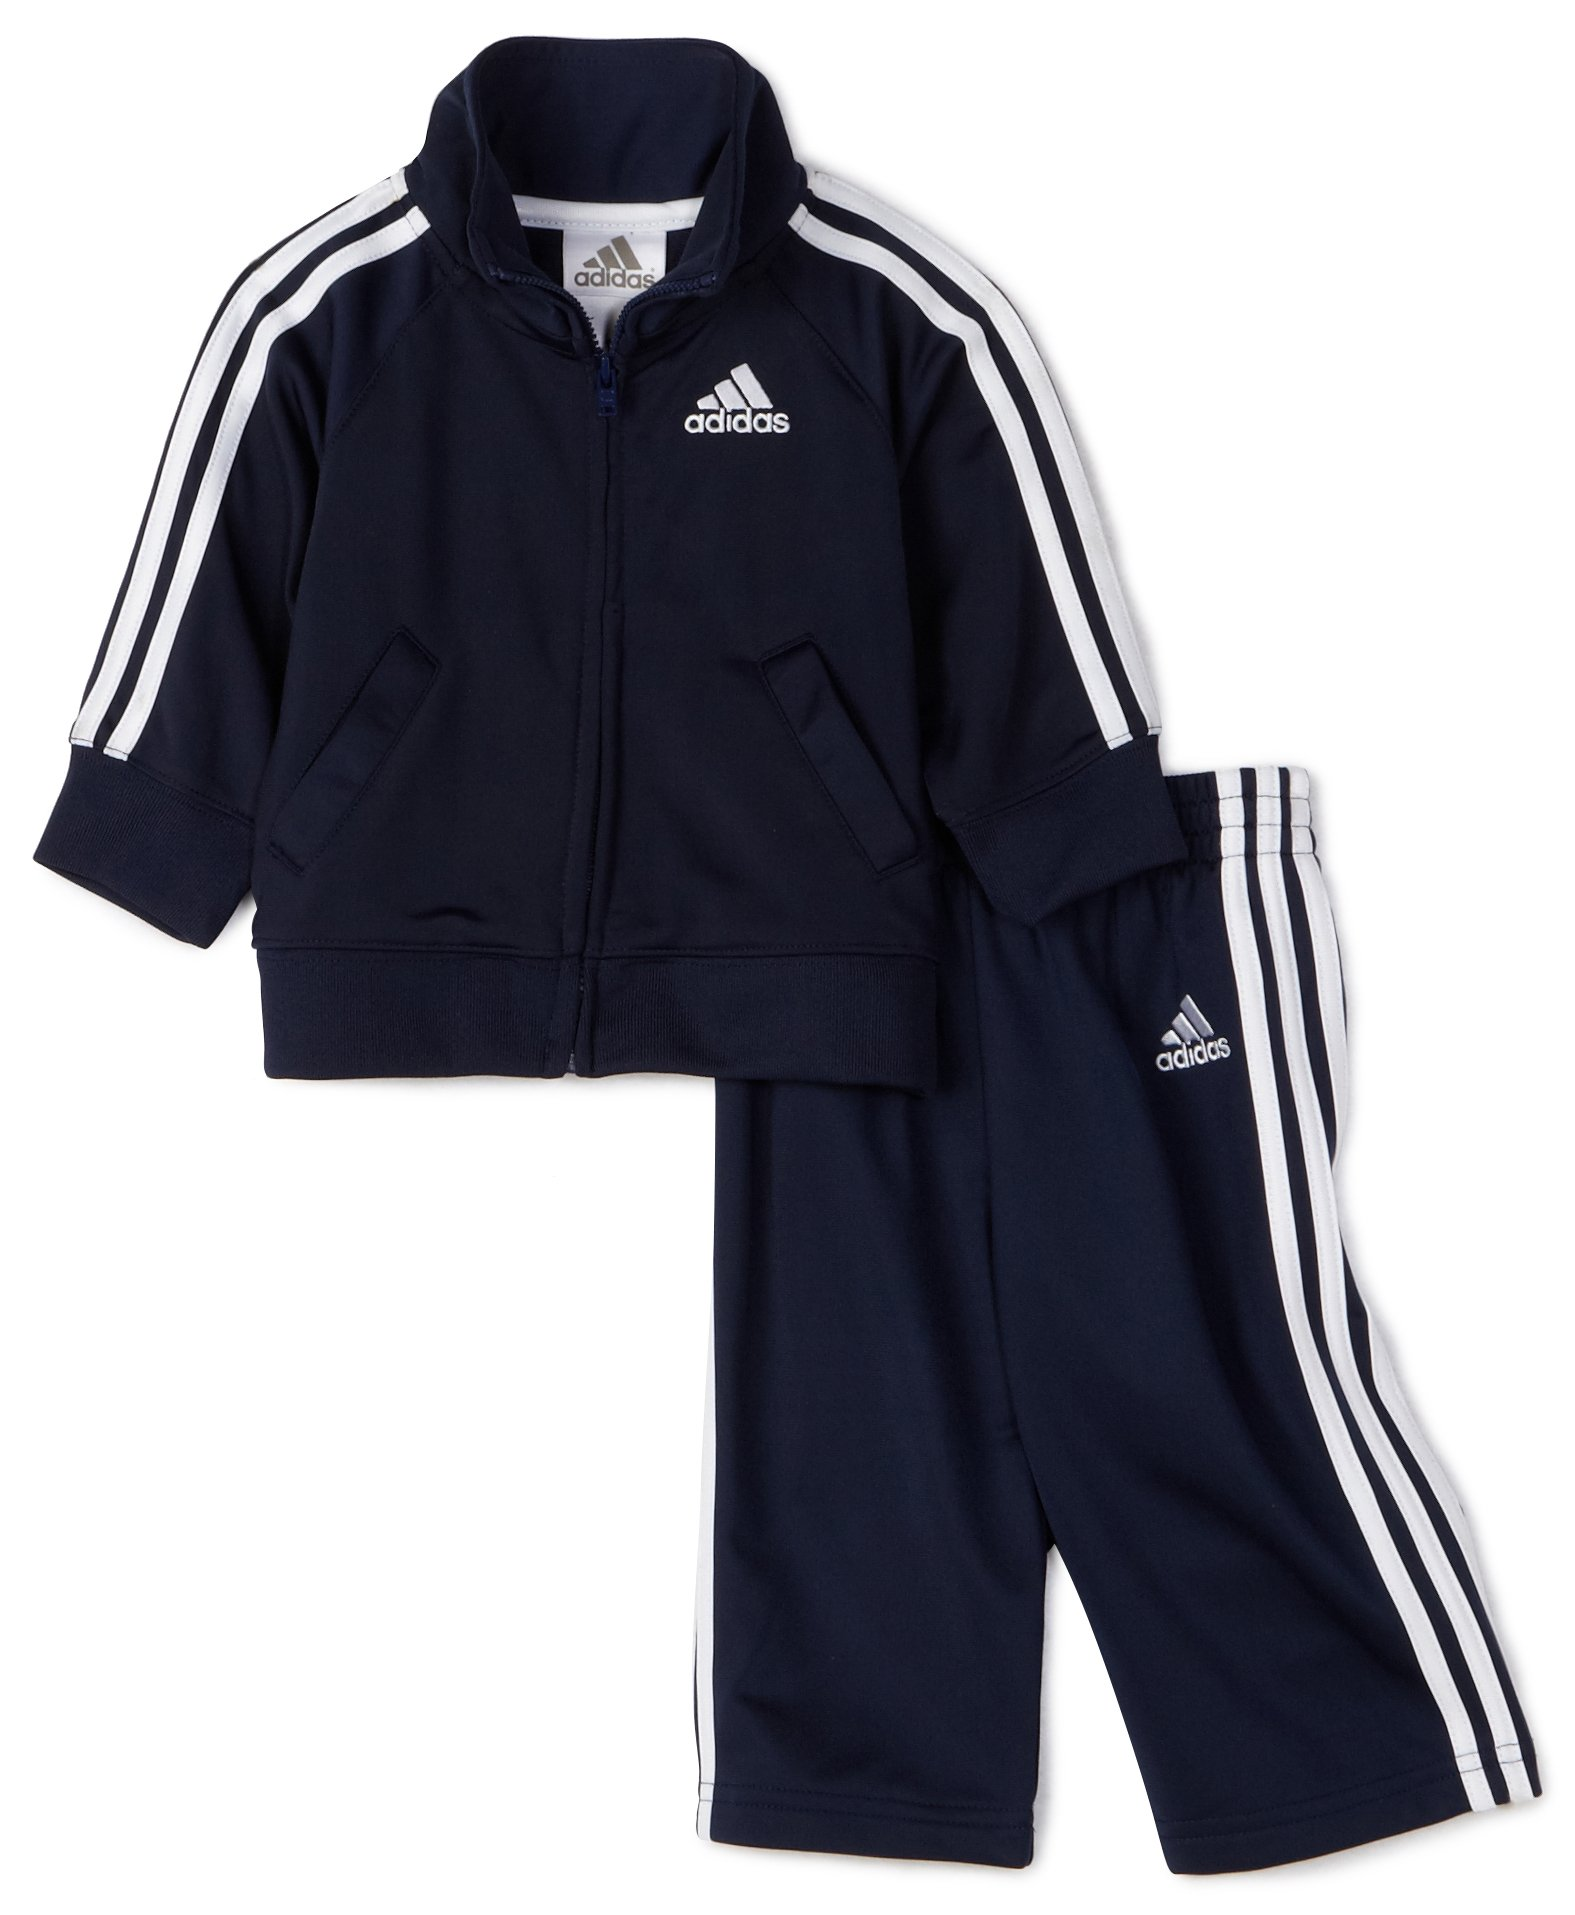 adidas Baby Boys' Iconic Tricot Jacket and Pant Set, Navy/White, 3 Months by adidas